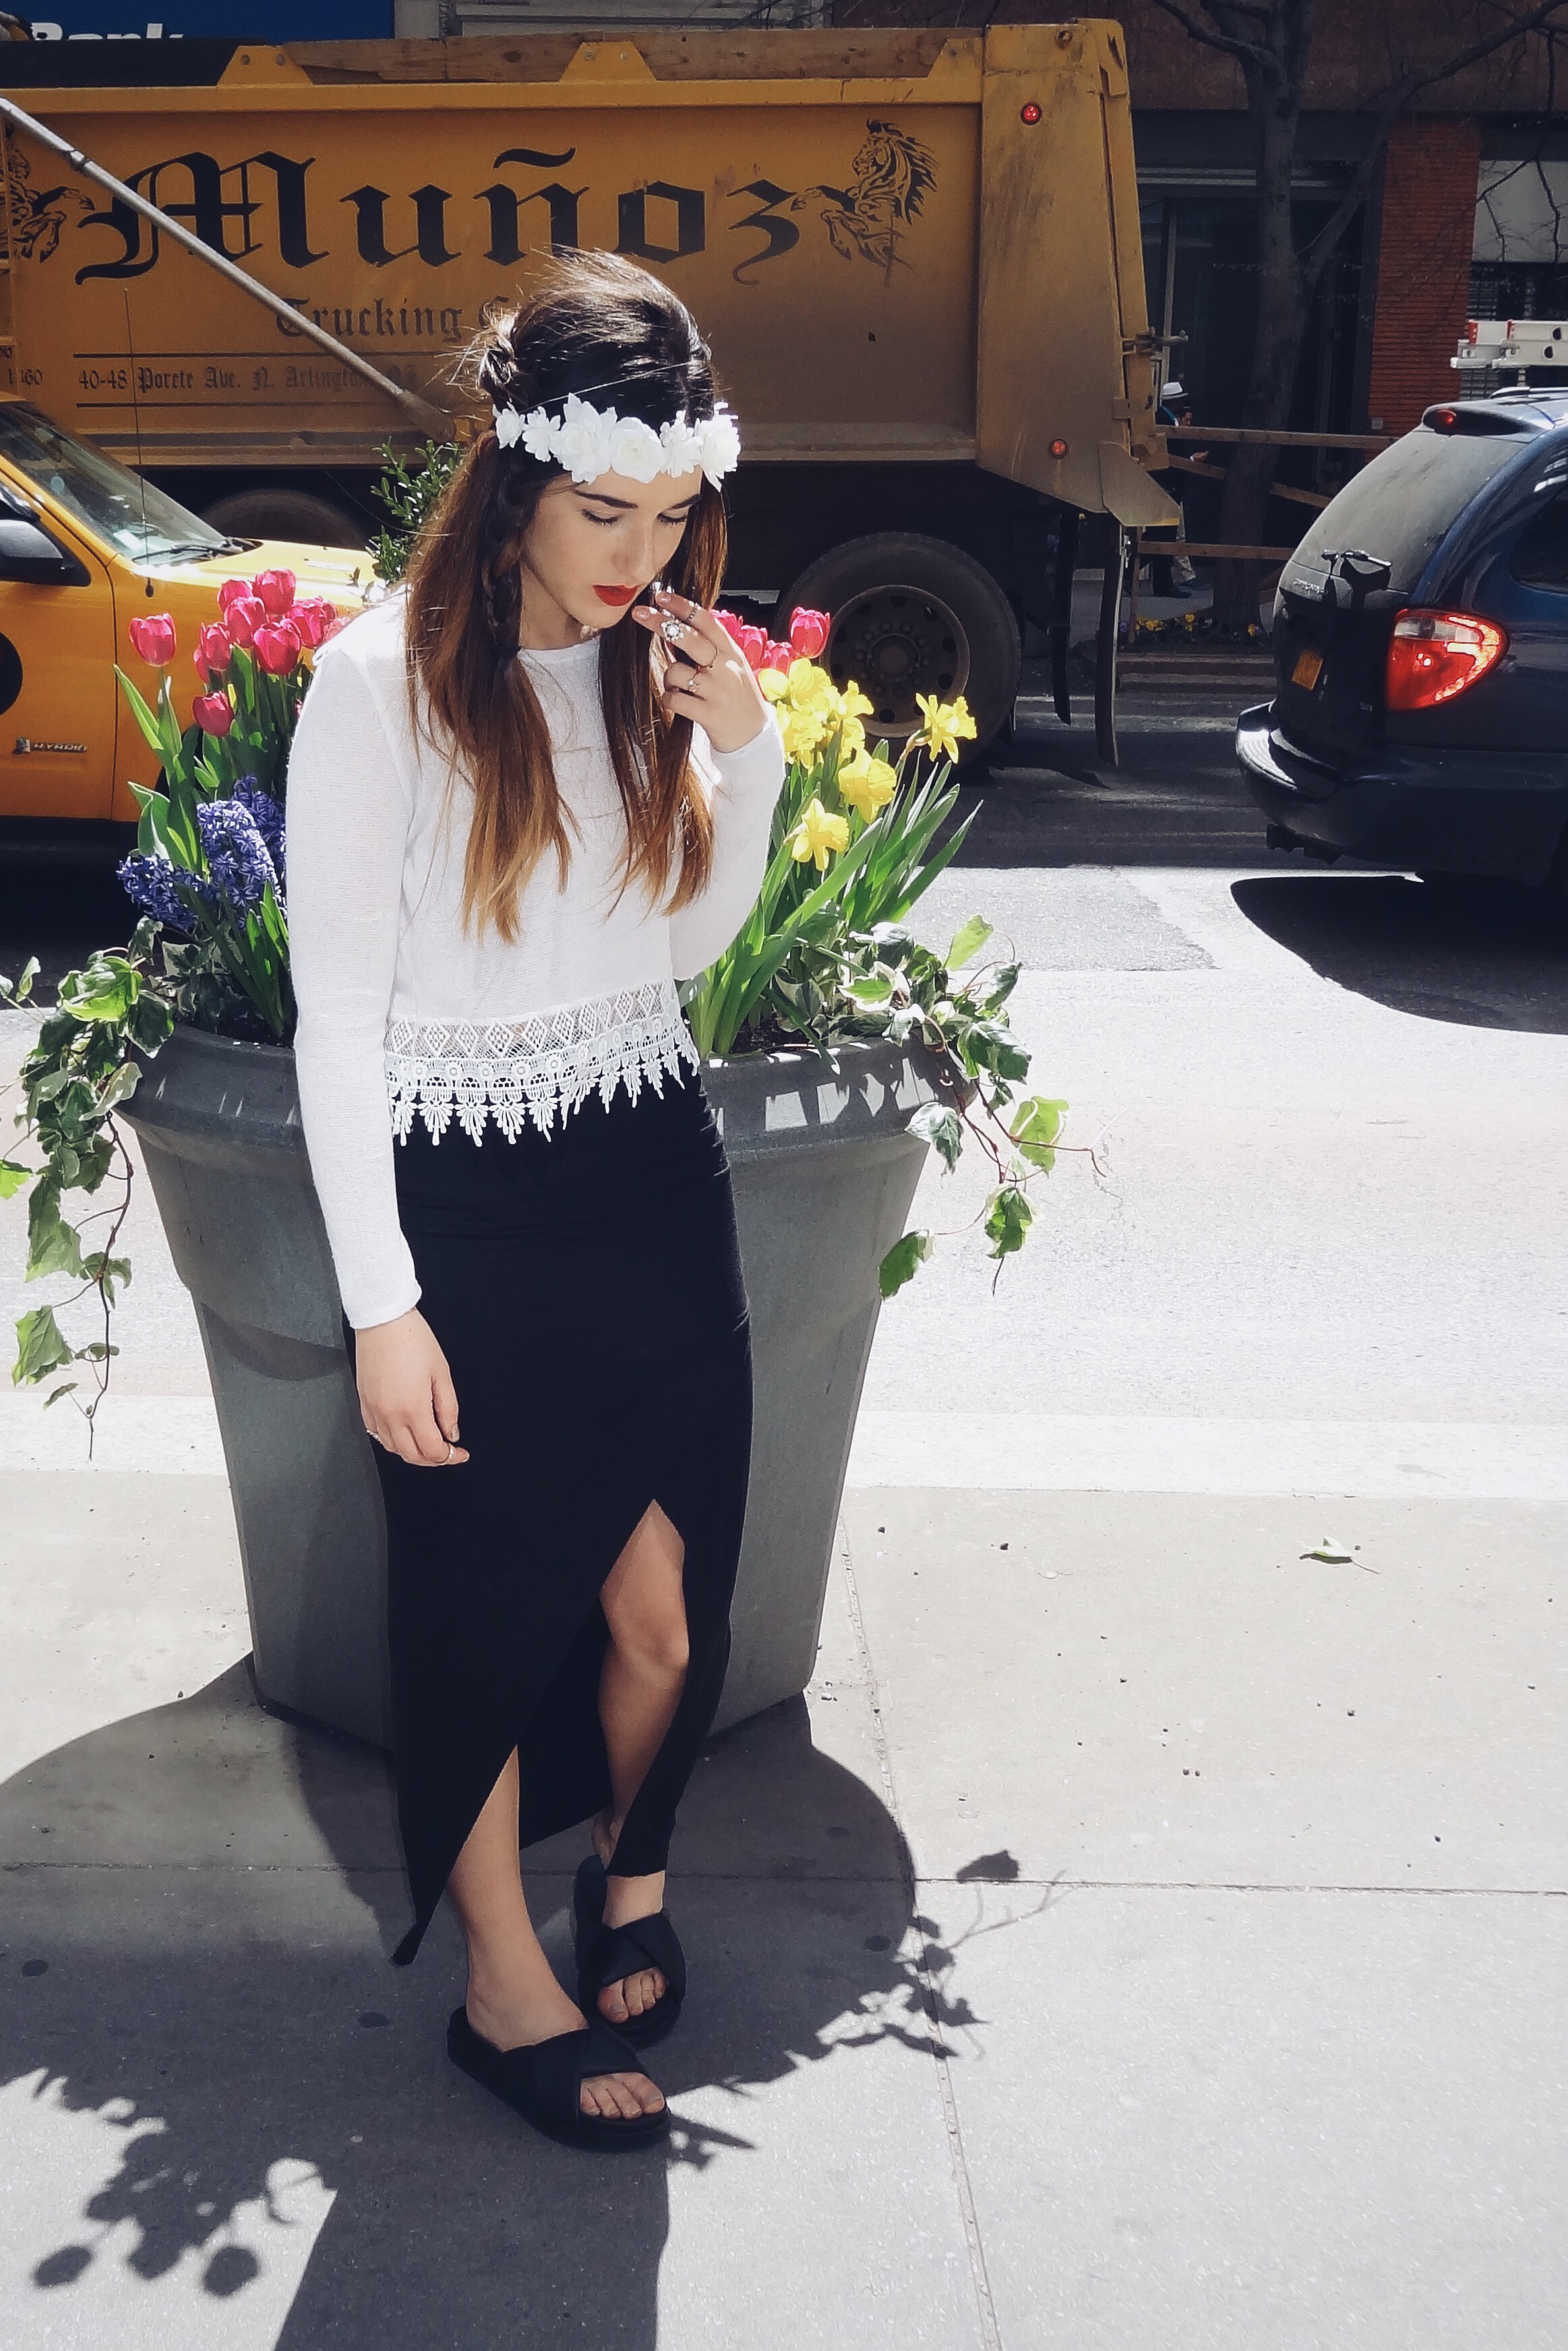 Summer Shoes From Ifchic Mules and Sandals Louboutins & Love Fashion Blog Esther Santer street style outfit trend ootd girl shoes NYC shopping dress skirt shirt women beautiful hair model photoshoot white black heels lifestyle collaboration.JPG